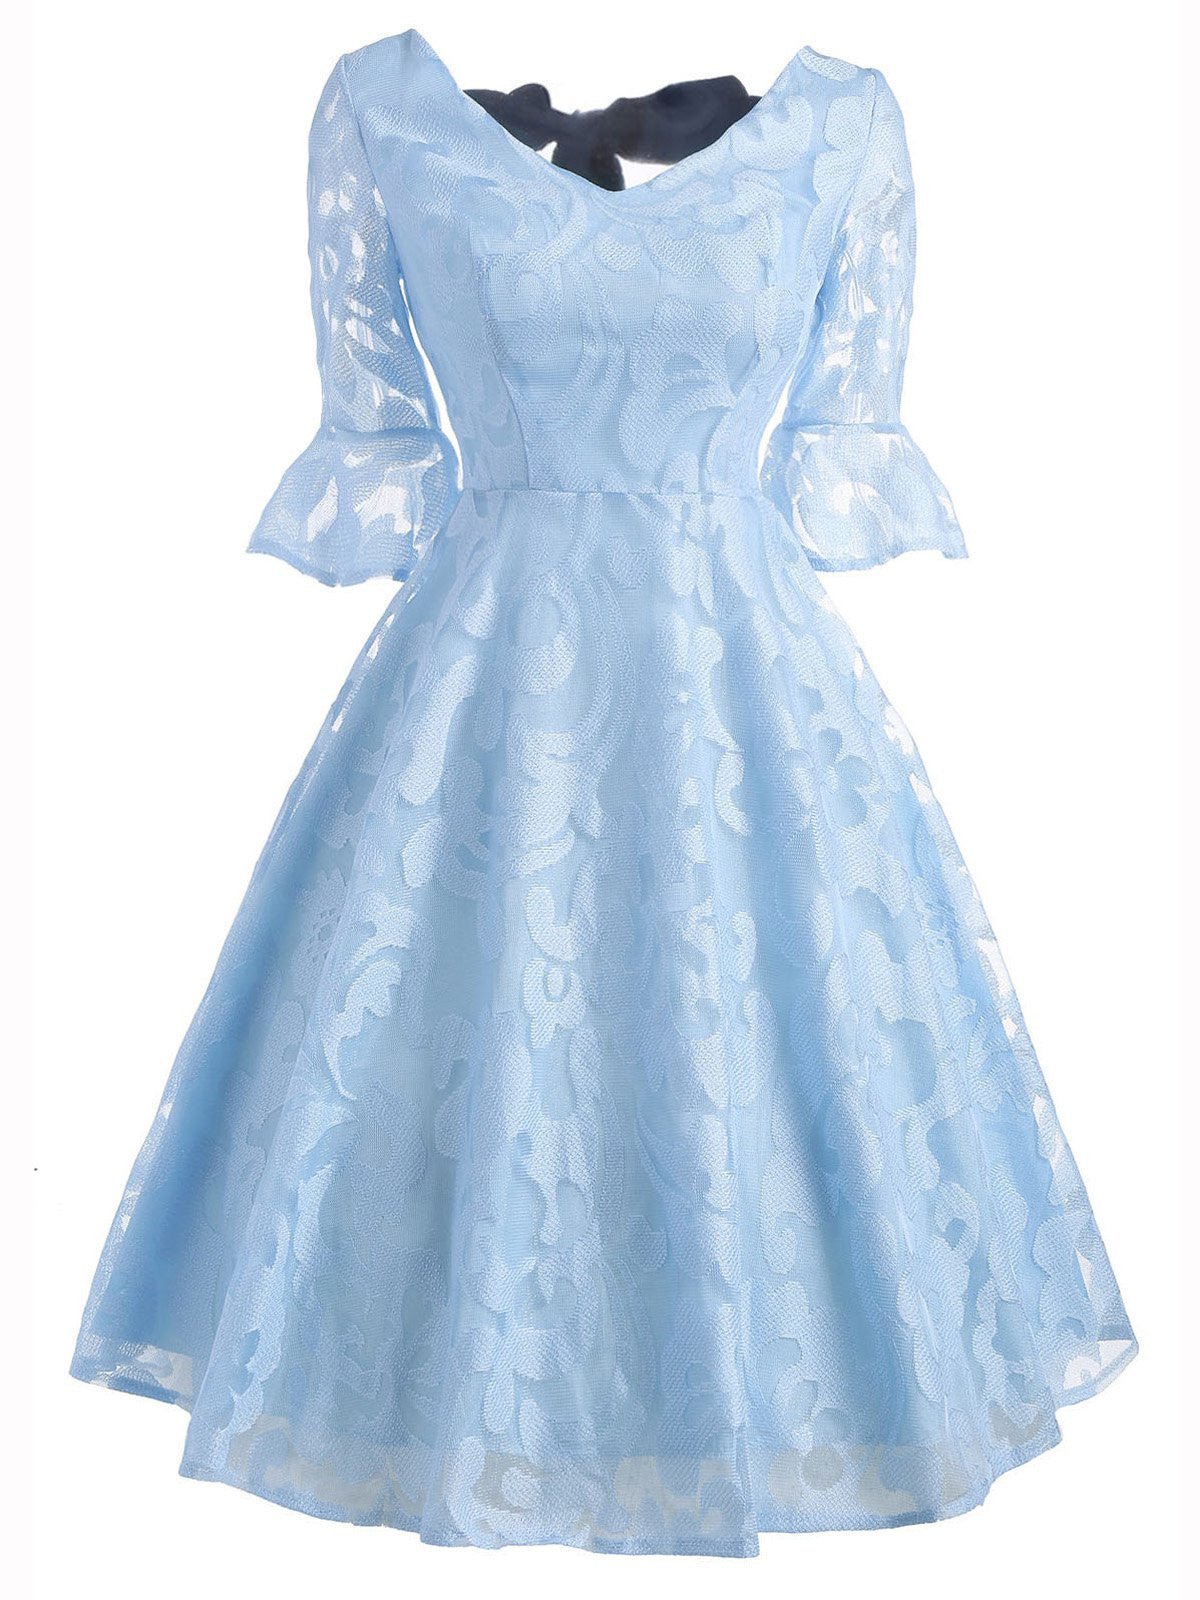 1184f026e3b0 Blue 1950s Back Lace Up Swing Dress - Retro Stage - Chic Vintage ...